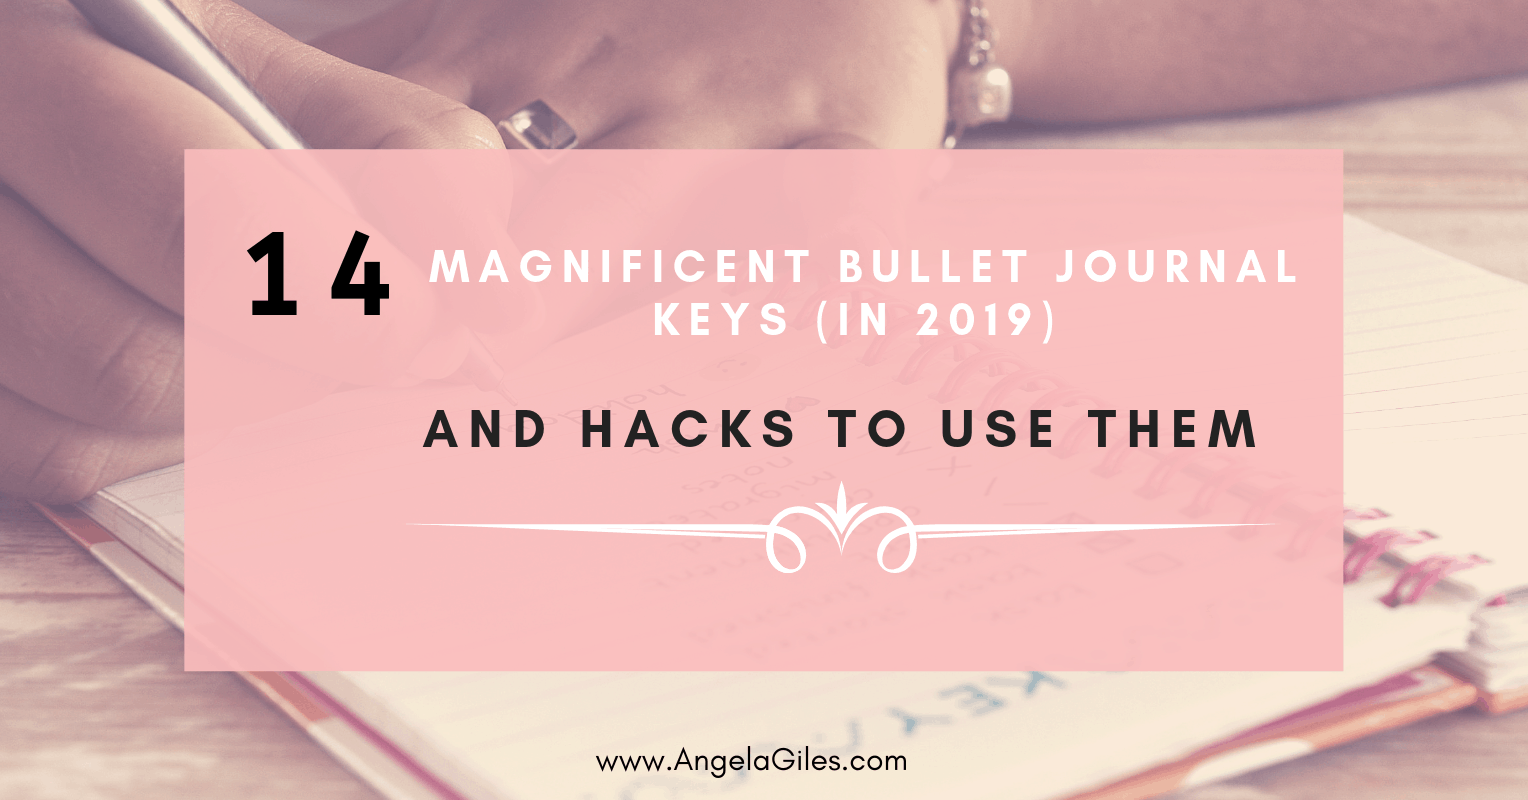 14 MAGNIFICENT BULLET JOURNAL KEYS AND HACKS TO USE THEM